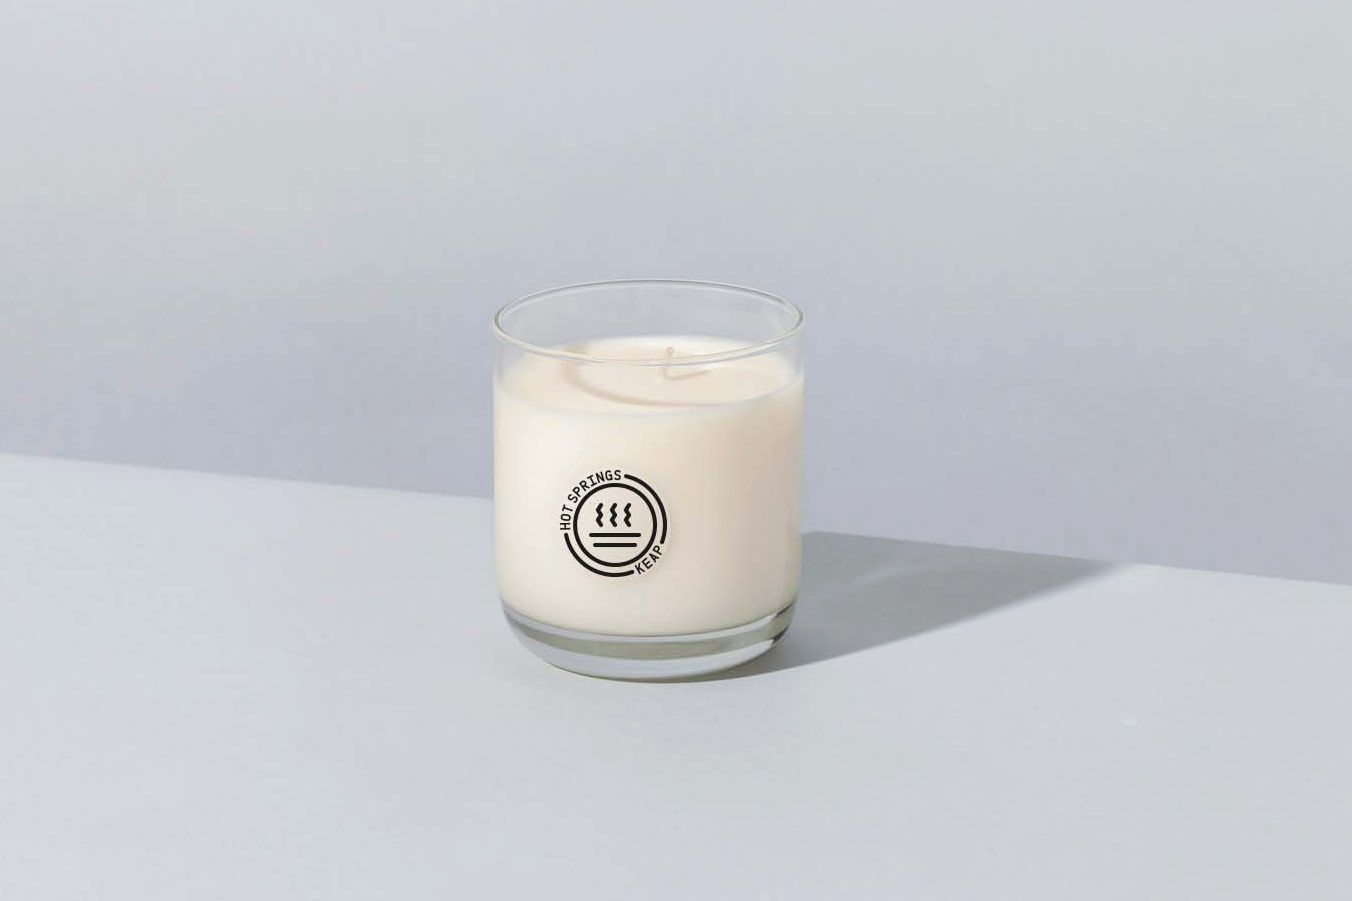 The Best 'Status' Candles Reviewed, 2018